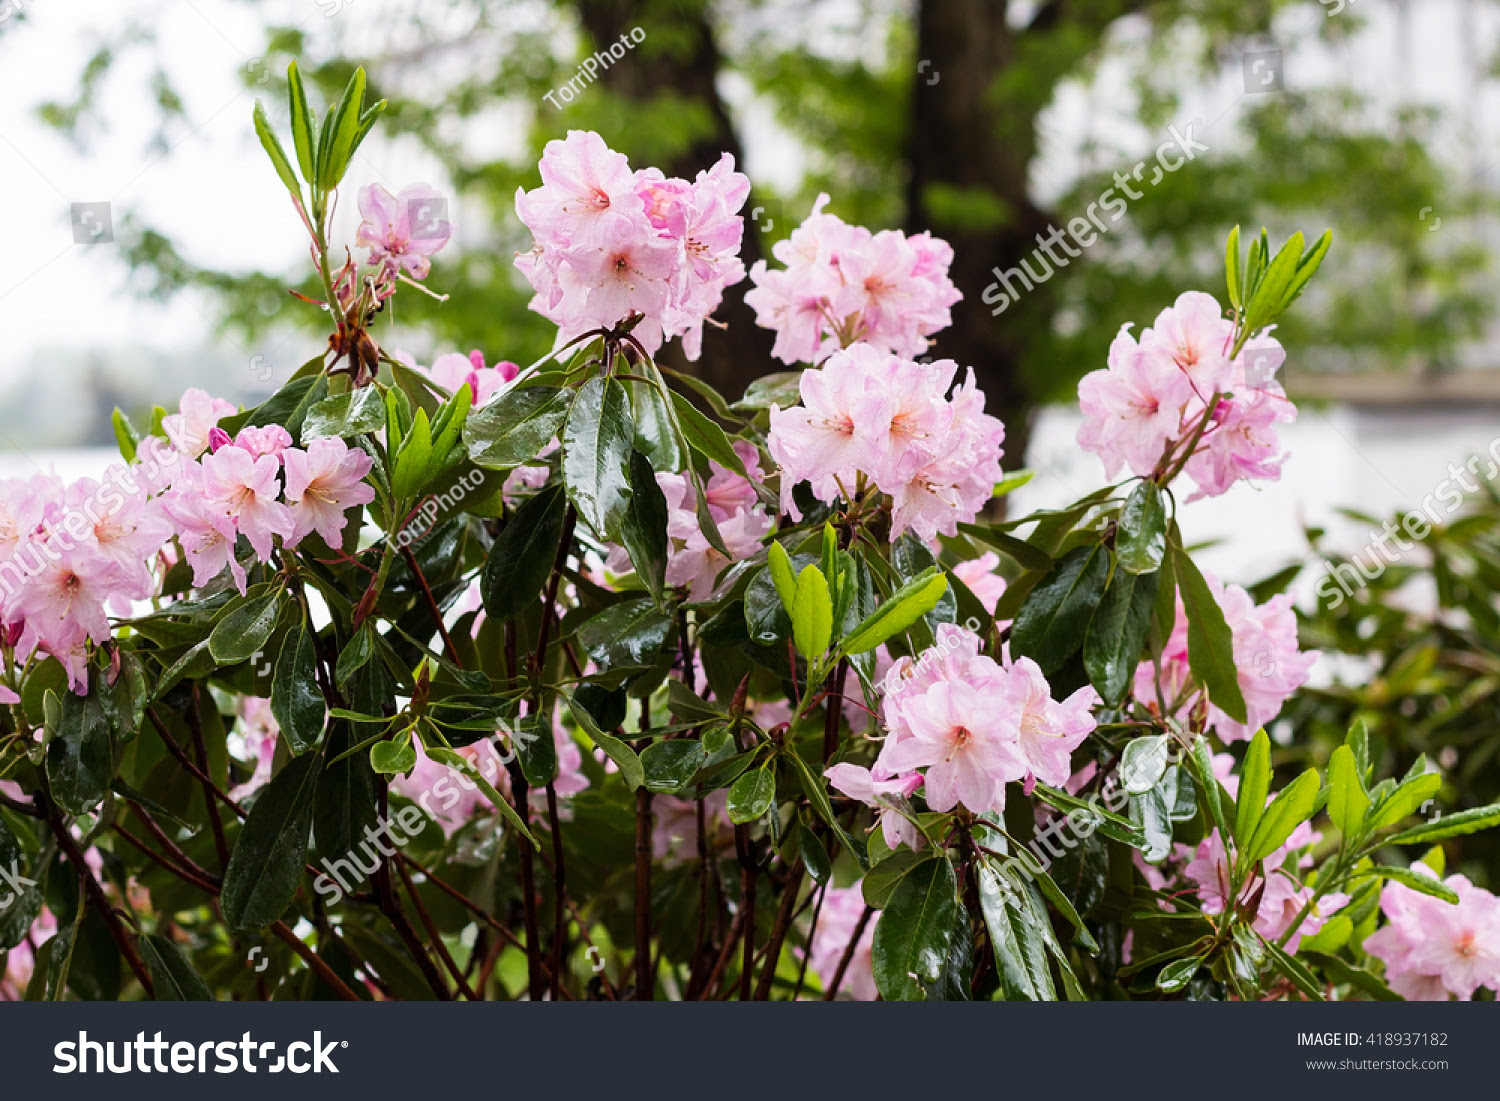 azalea, azalia, background, beautiful, beauty, blog, bloom, blooming, blossom, blossoming, blurred, botanical, botany, bush, color, colorful, decorative, defocused, flora, floral, flower, focus, fresh, garden, gardening, green, leaf, natural, nature, outdoors, park, pastel, petal, pink, plant, ponticum, pretty, rain, rhododendron, romance, romantic, season, seasonal, shallow, spring, summer, tropical, wet